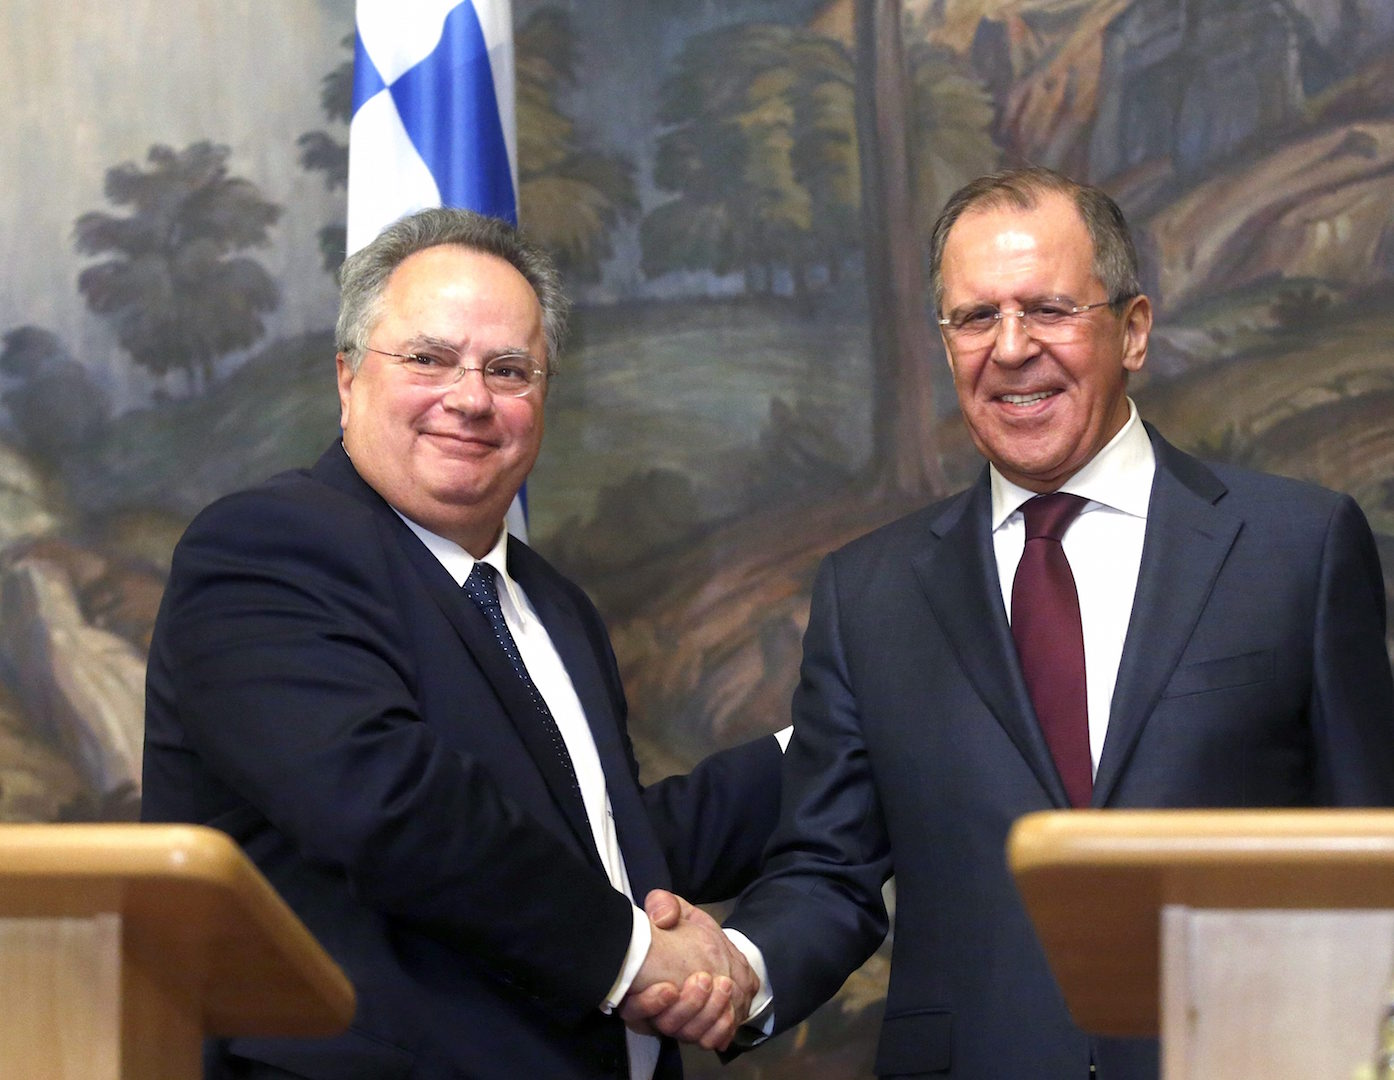 Pipeline: What country will say 'yes'? Greece or Bulgaria? Russia is waiting…